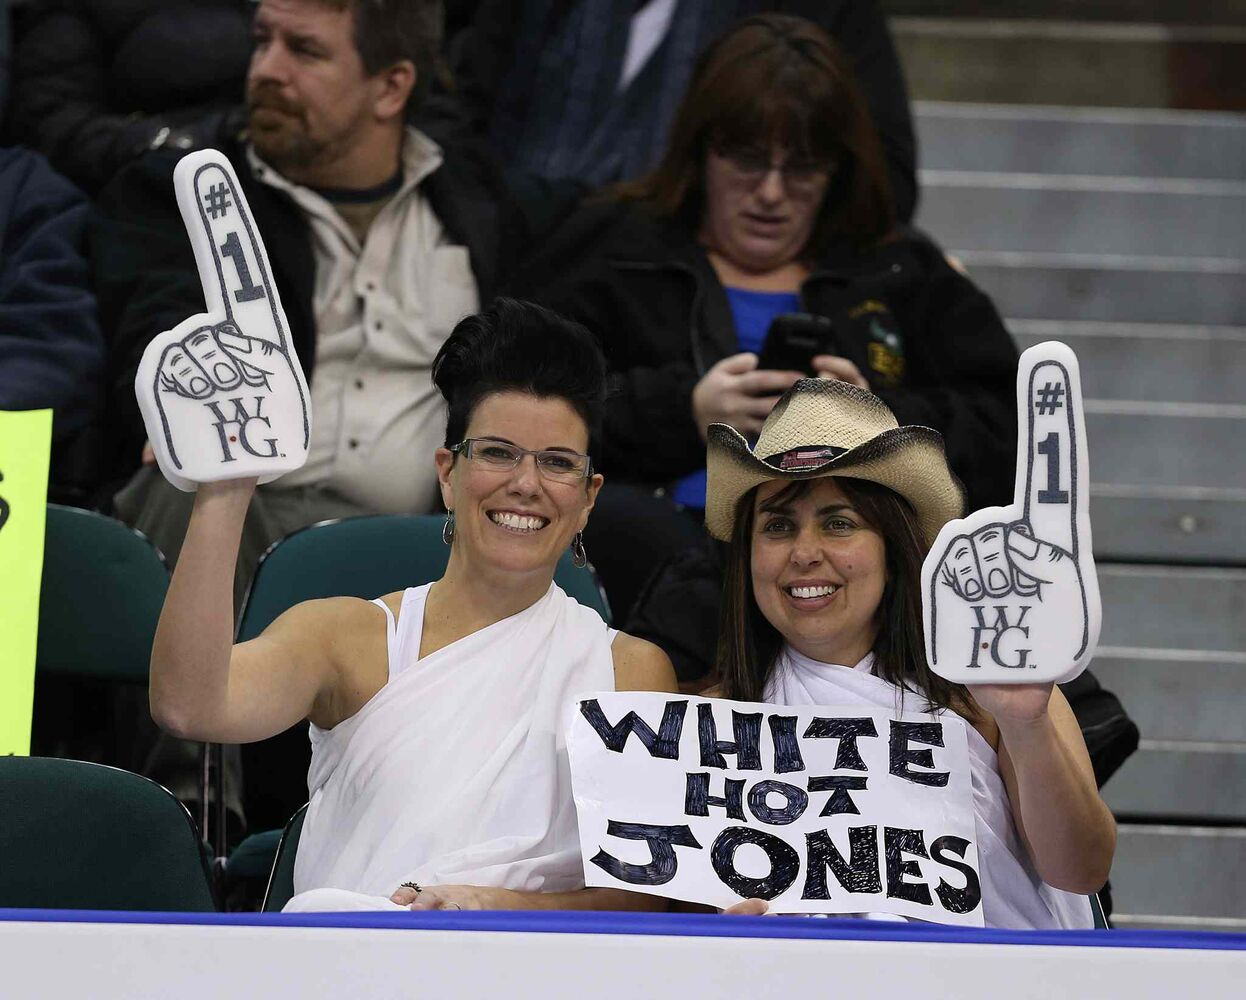 Fans cheer on Jennifer Jones and her team as they defeated Sherry Middaugh in the women���s final of Roar of the Rings curling at the MTS Centre on Sat., Dec. 7, 2013 to win the right to represent Canada at the Winter Olympics in Sochi, Russia, in February. Photo by Jason Halstead/Winnipeg Free Press